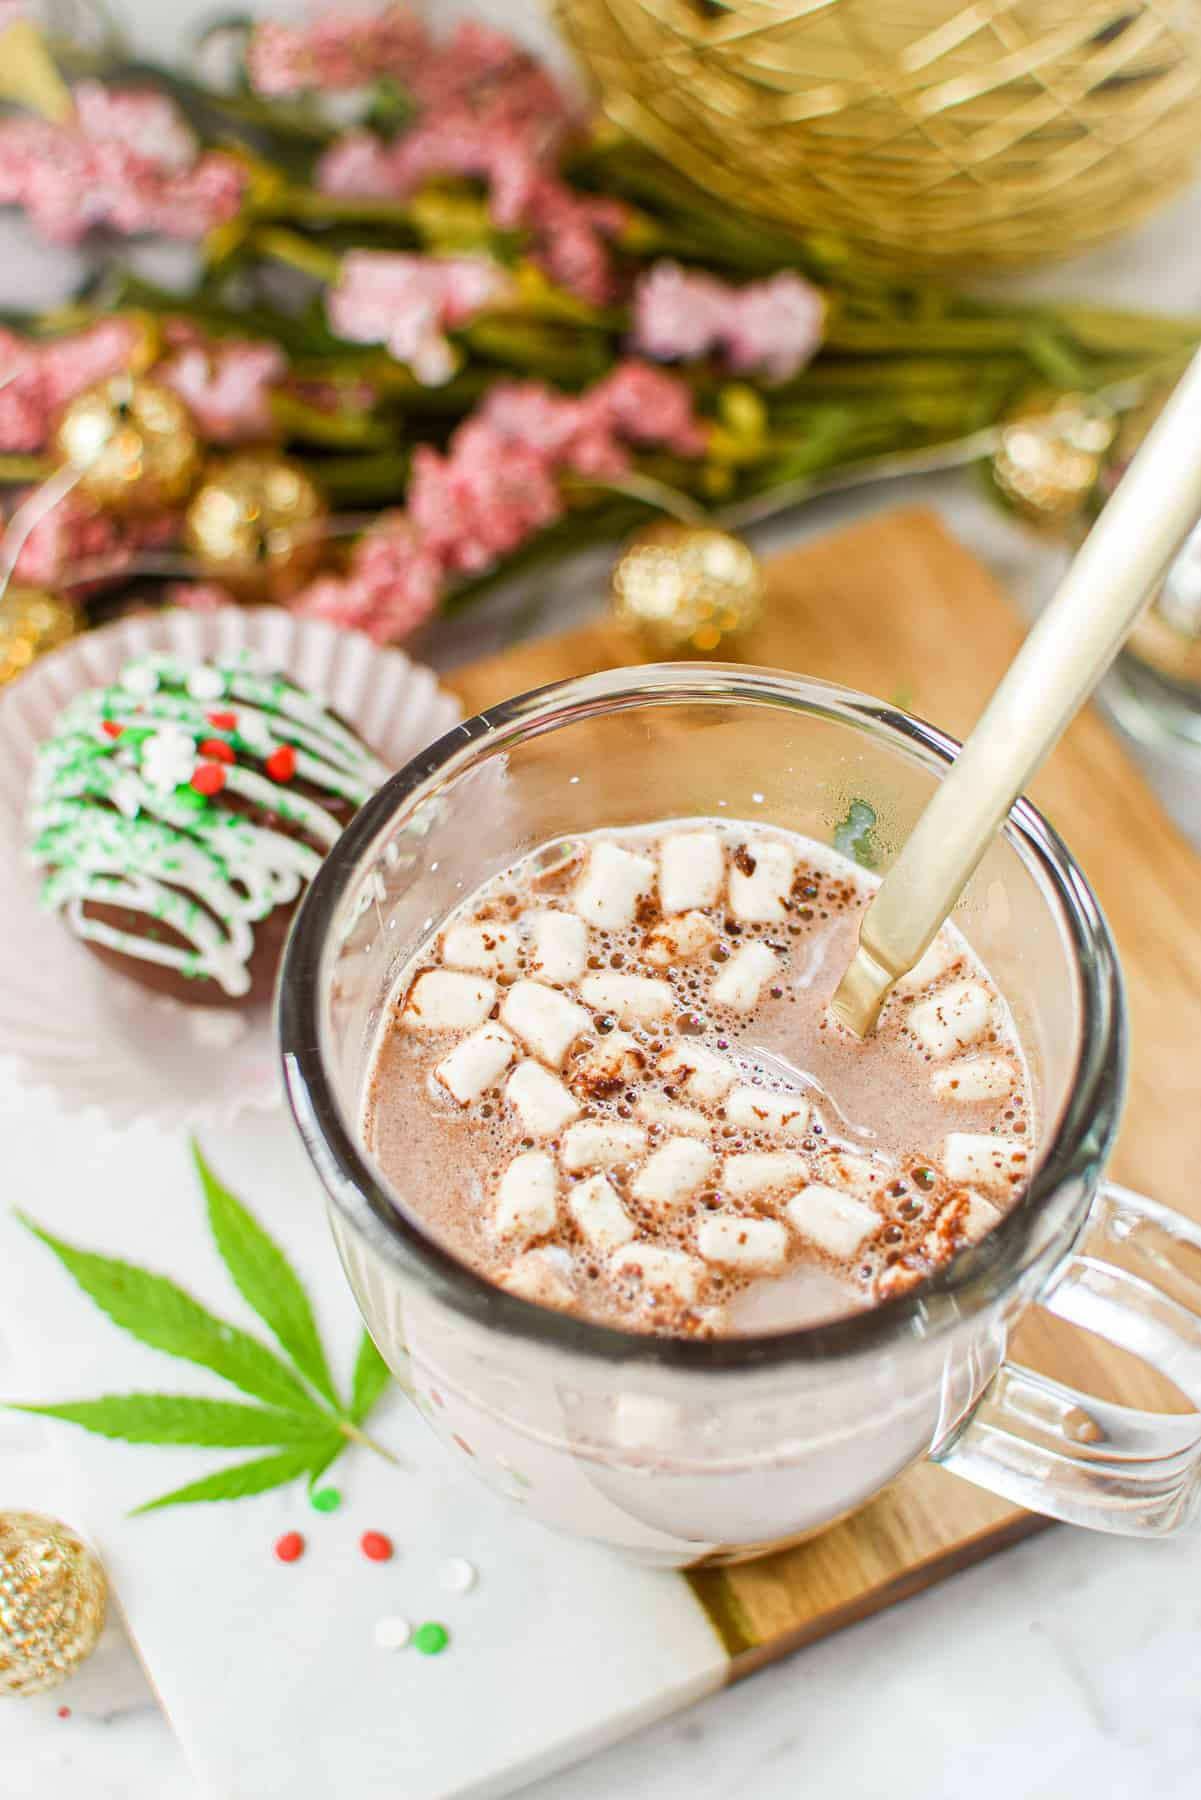 A white countertop with a cutting board topped with a clear mug full of milk and a hot cocoa bomb that has released cocoa mix and marshmallows